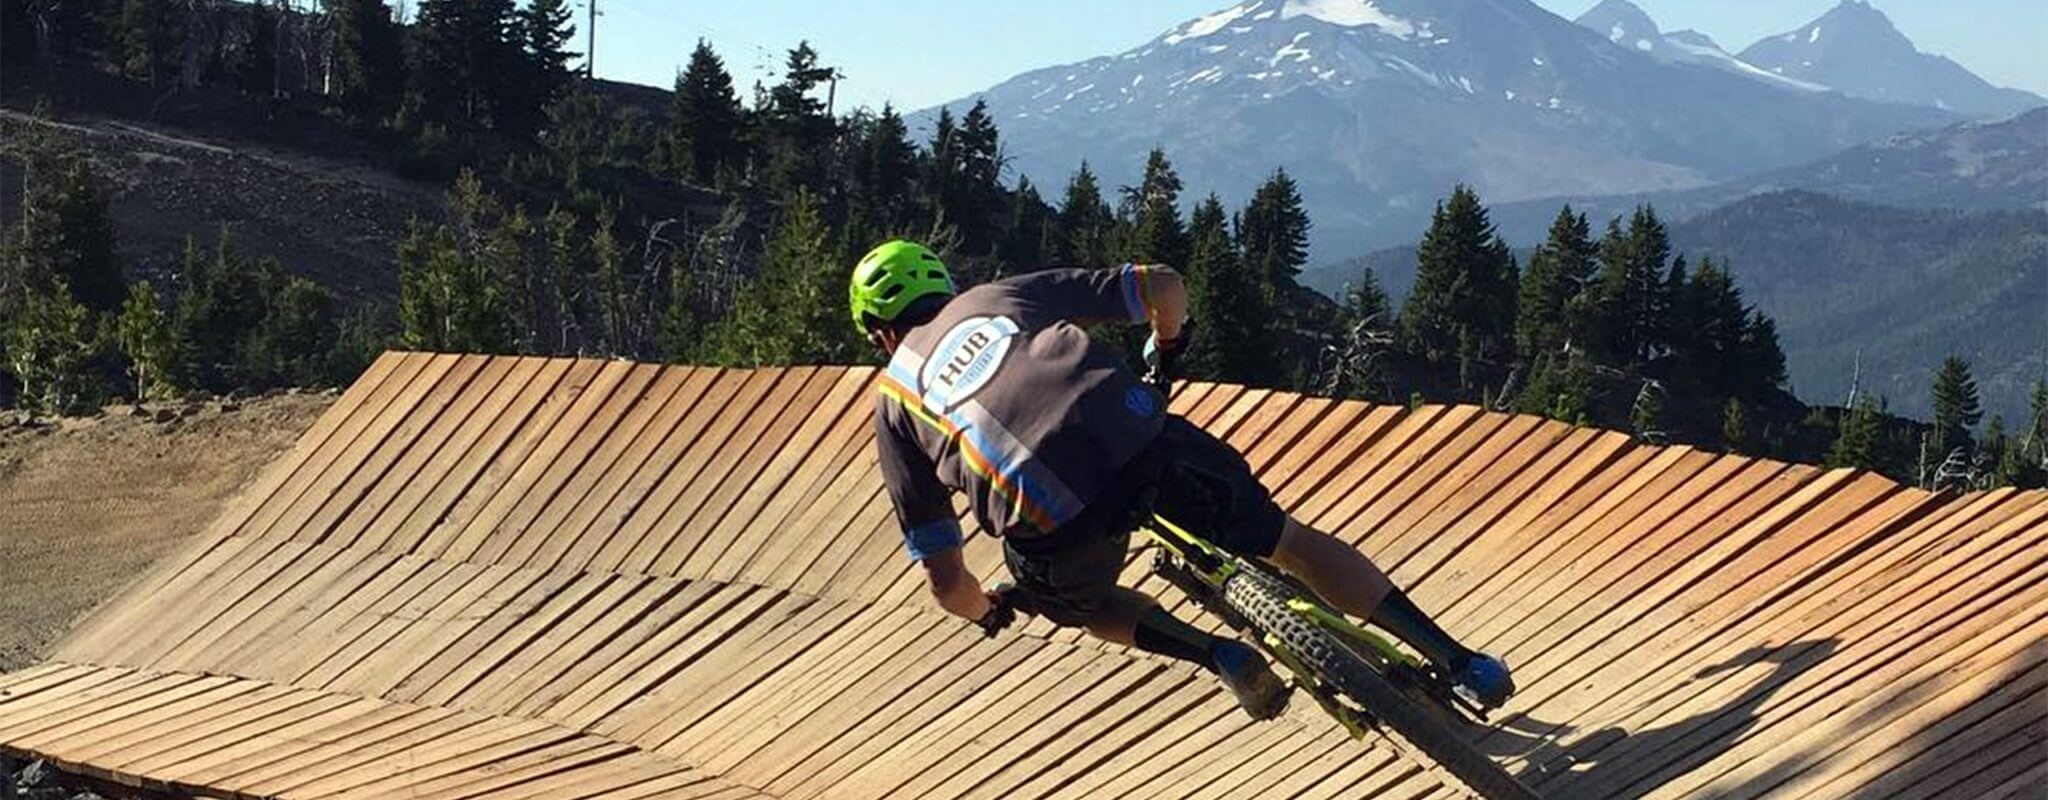 Mountain bike in Bend, Oregon